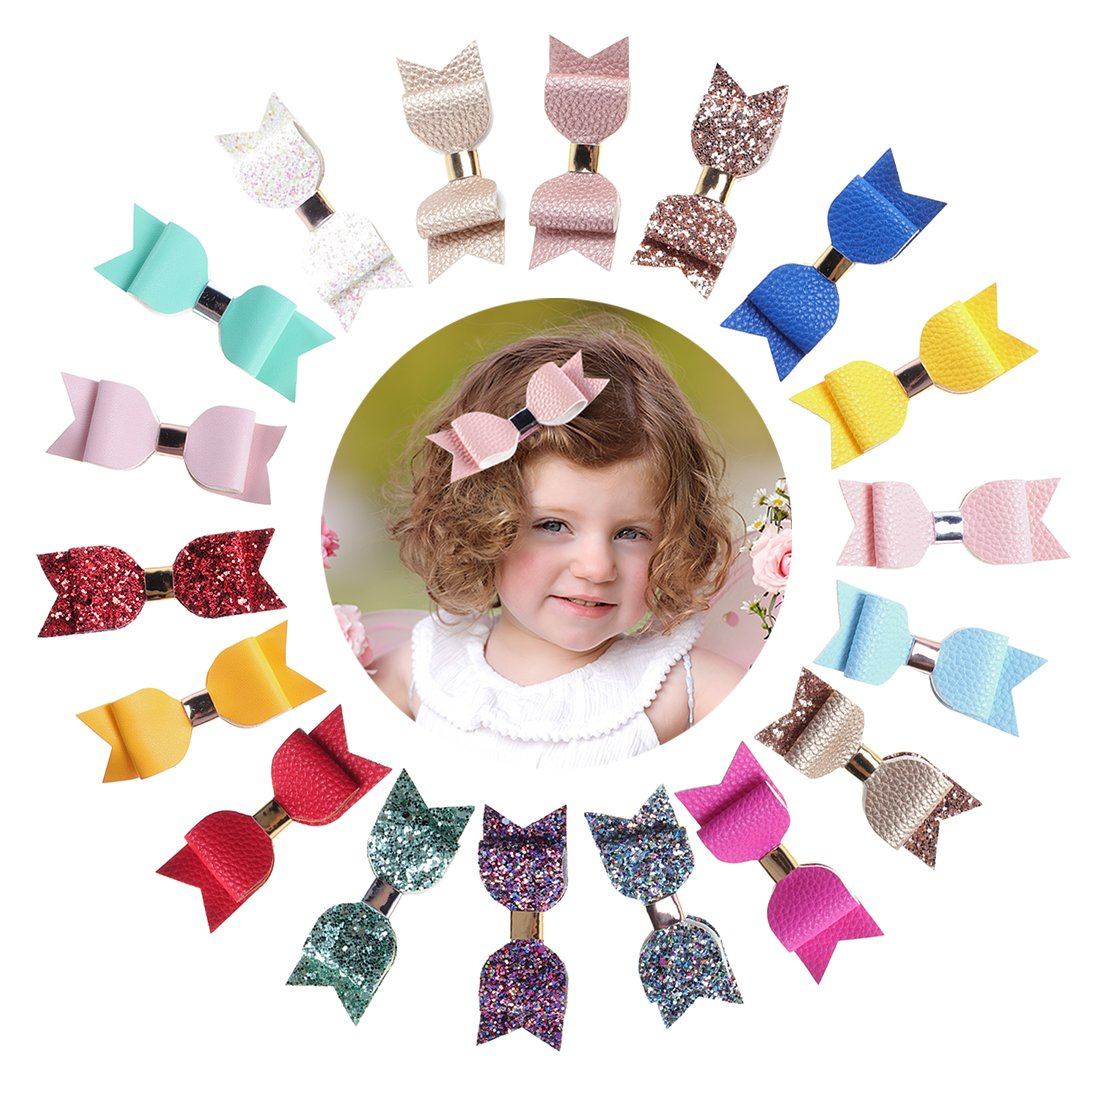 Infant Flower Clips For Baby Girls, Xeababy 12 pcs 2 inch Chiffon Rhinestone Pearl Hair Bow Clips For Baby Girl USA-BEX-050